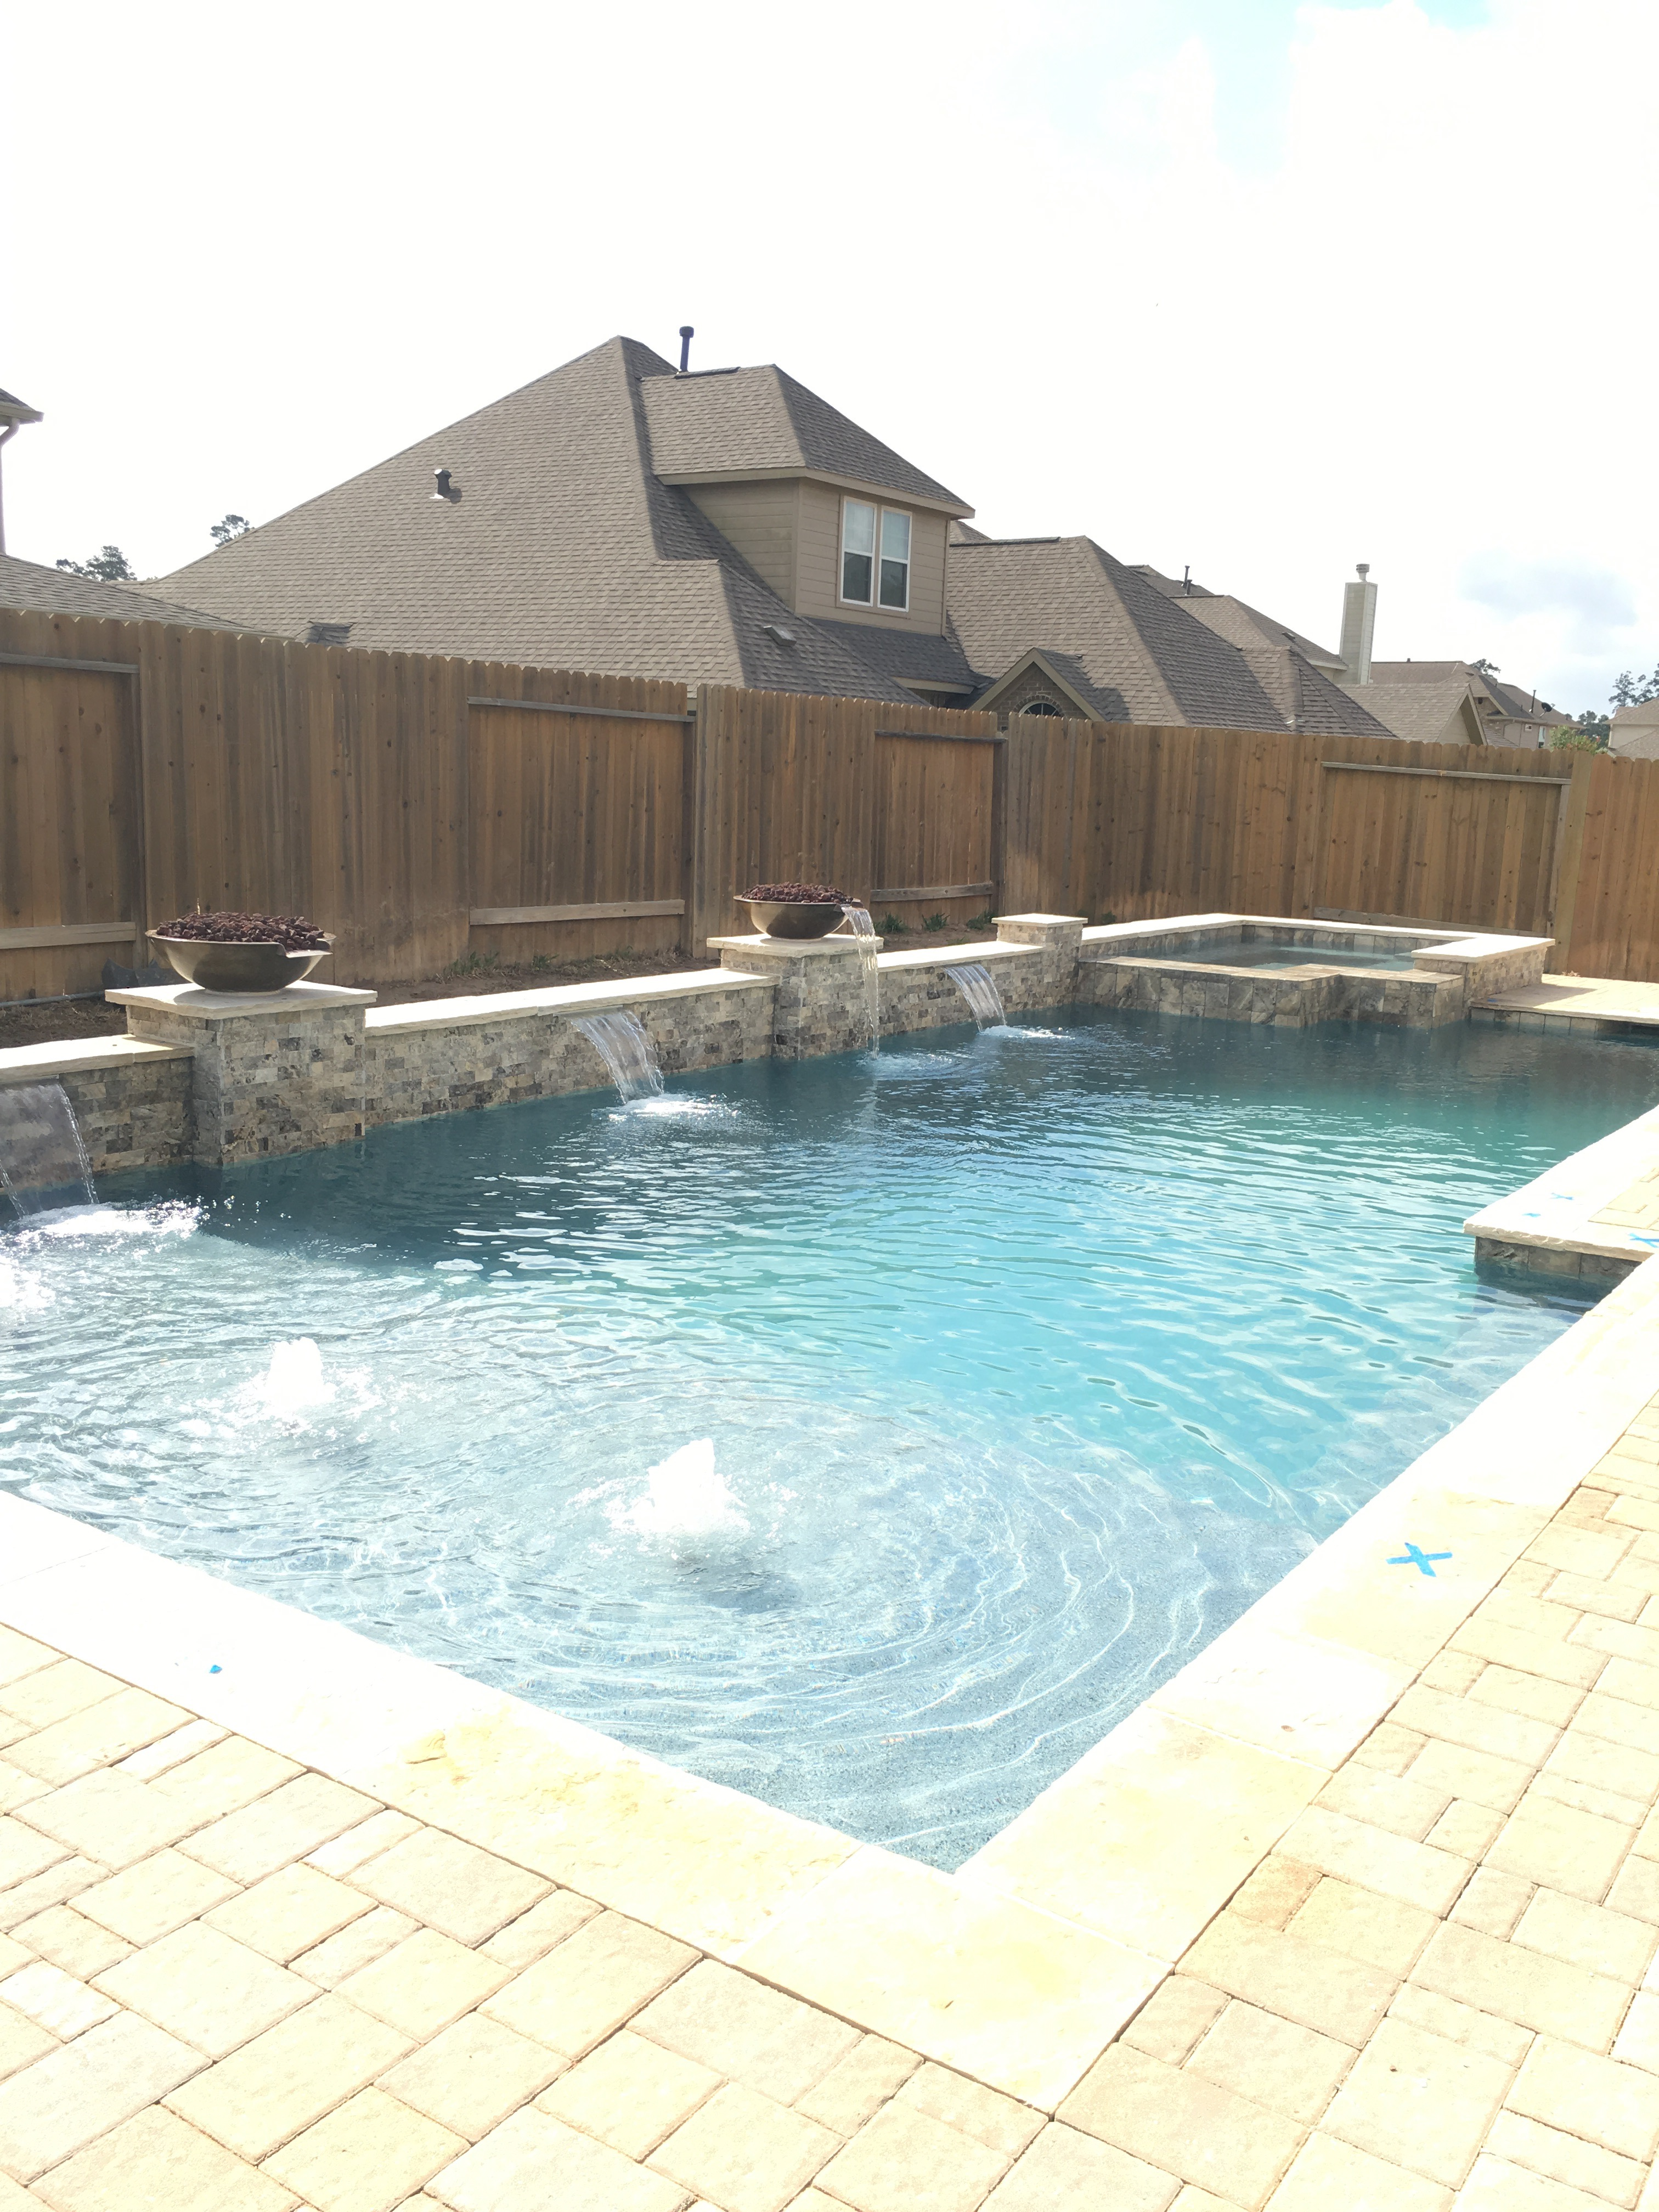 Pool Construction Overview #Pool #PoolConstruction